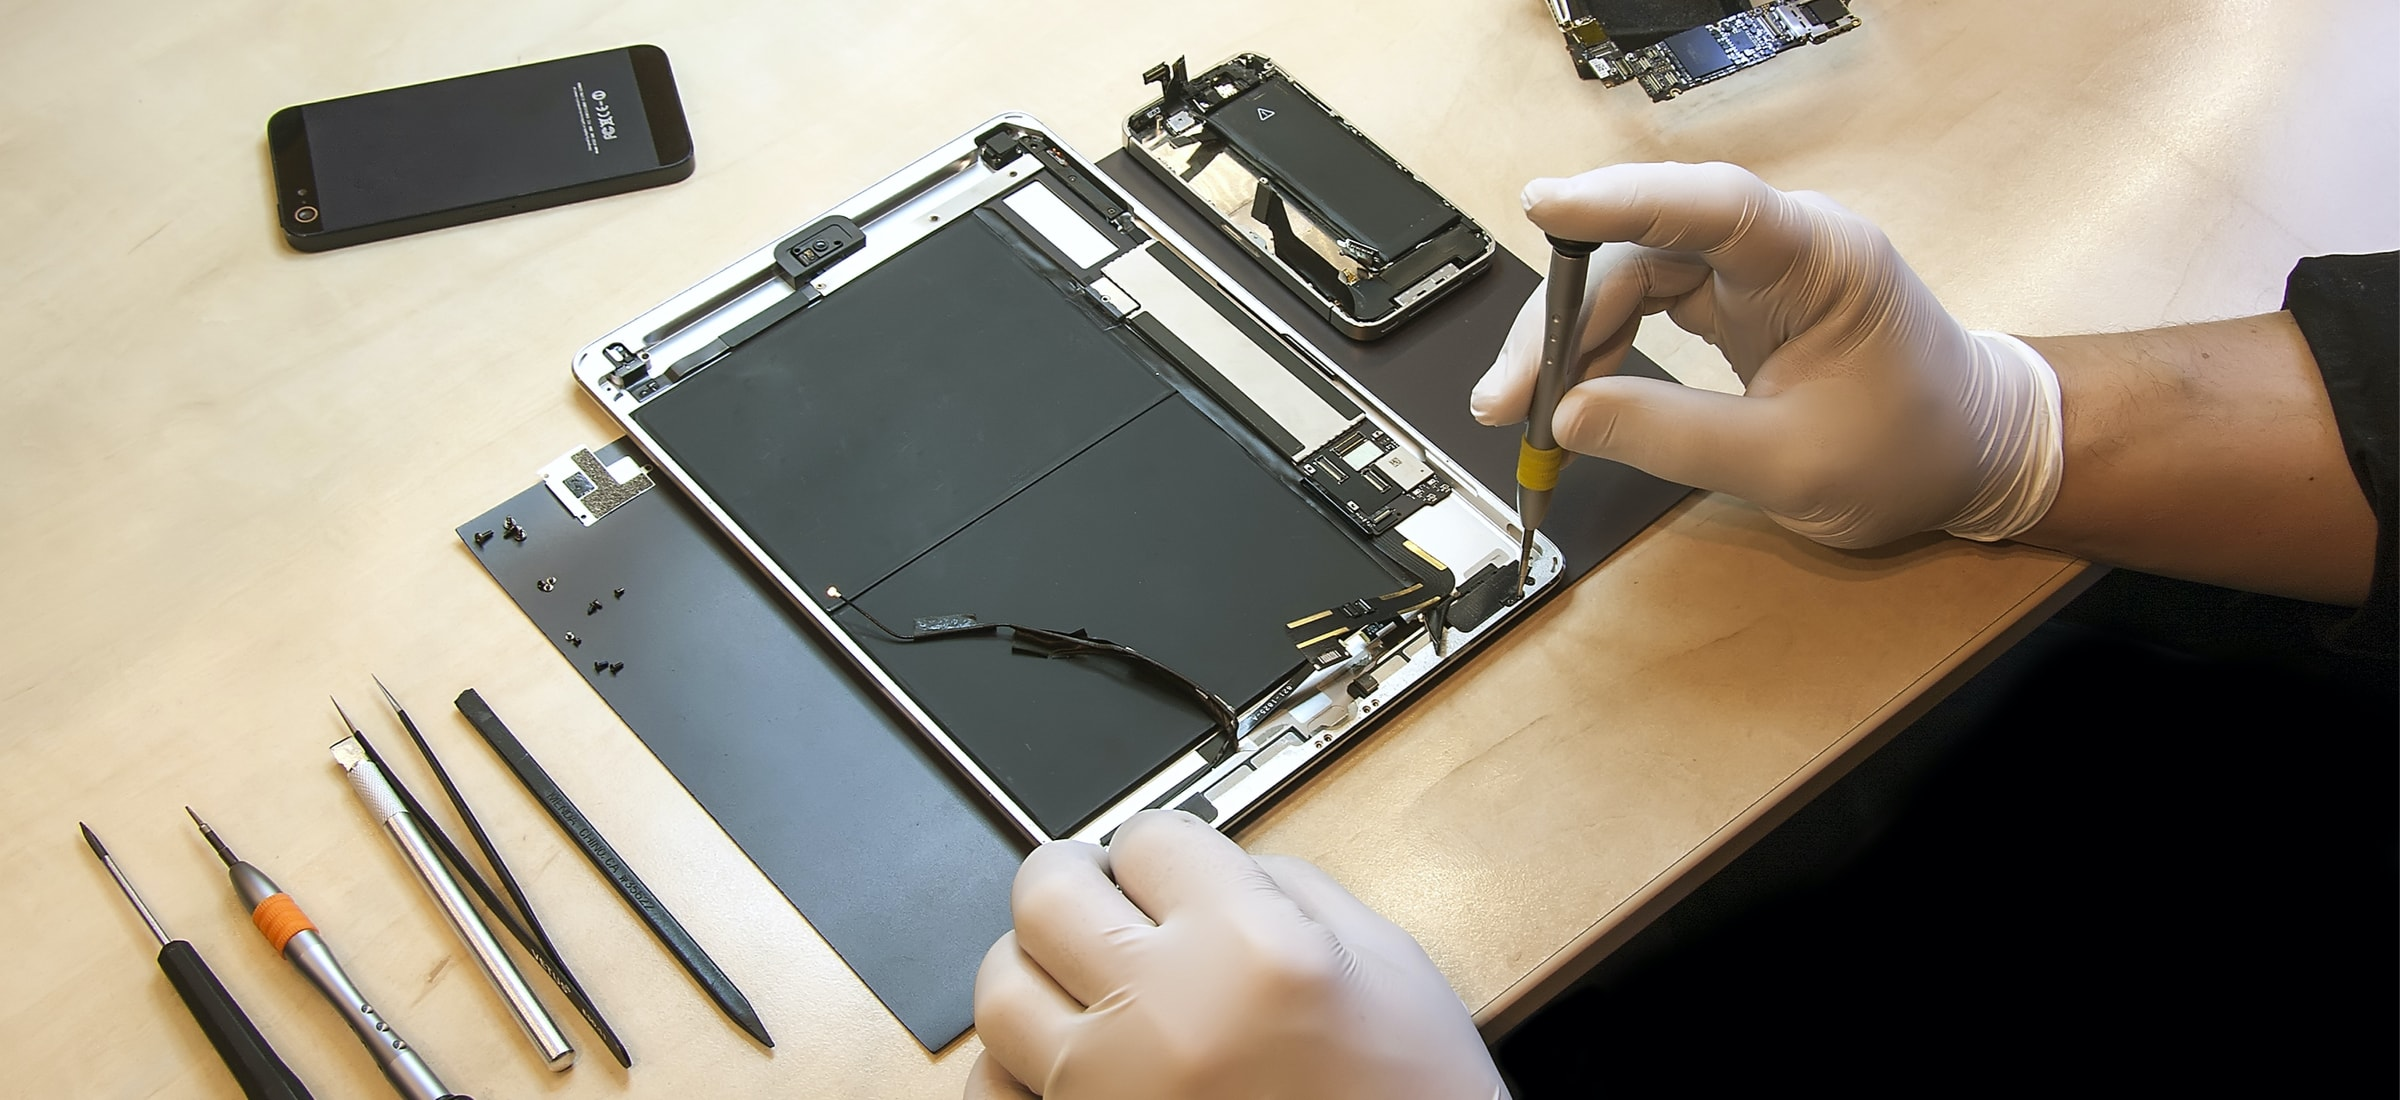 Apple said my iPad is disposable. The Polish service dealt with the matter quickly and cheaply